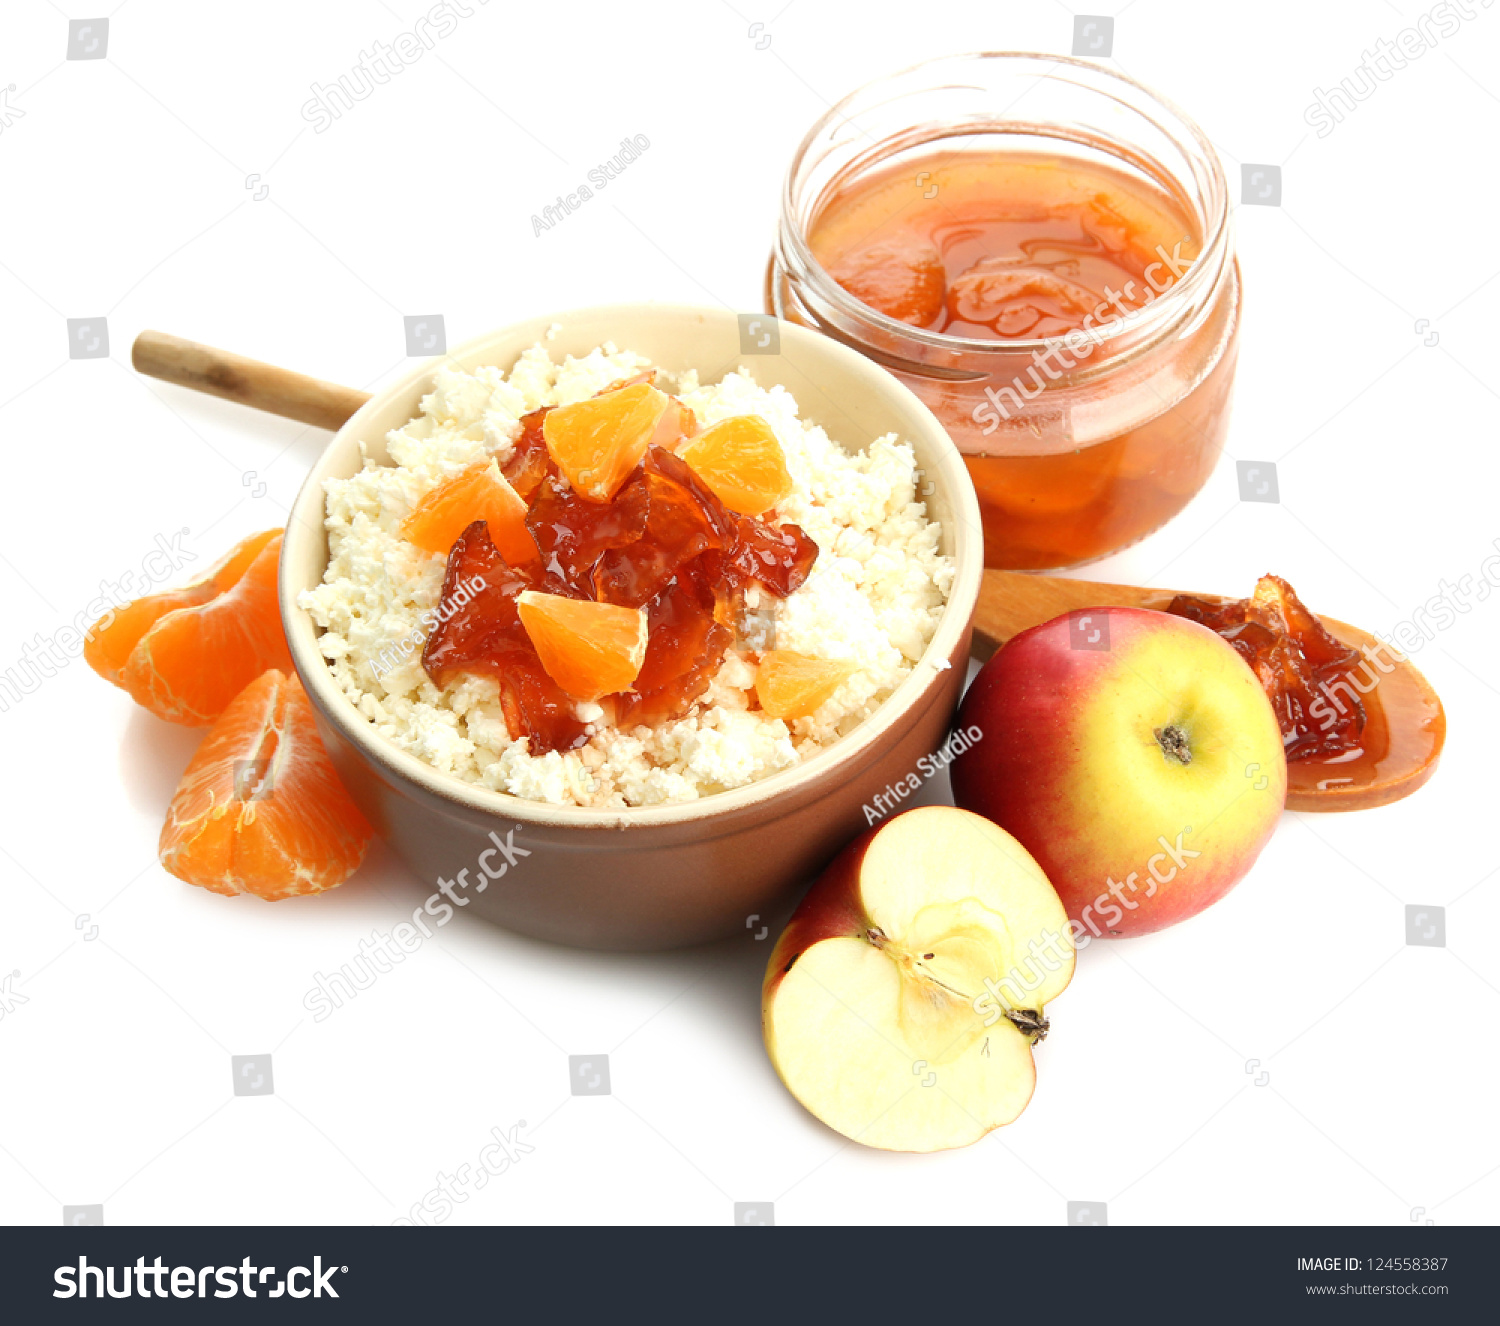 Cottage Cheese With Jam: Cottage Cheese In Bowl With Homemade Fruit Jam, Isolated